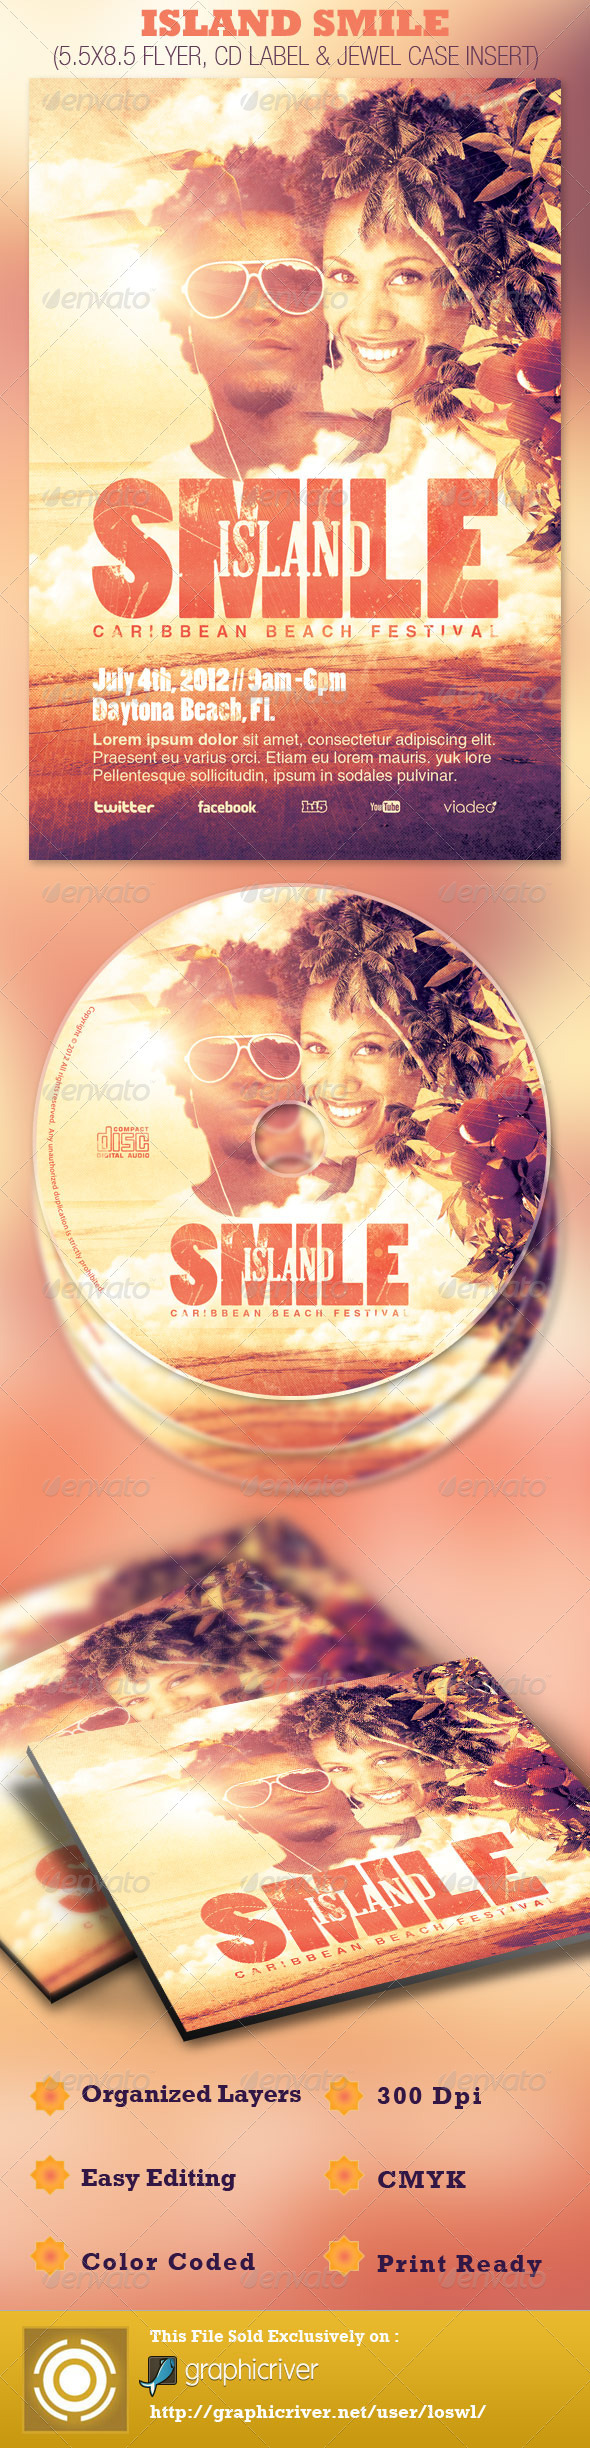 Island Smile Event Flyer and CD Template - Events Flyers